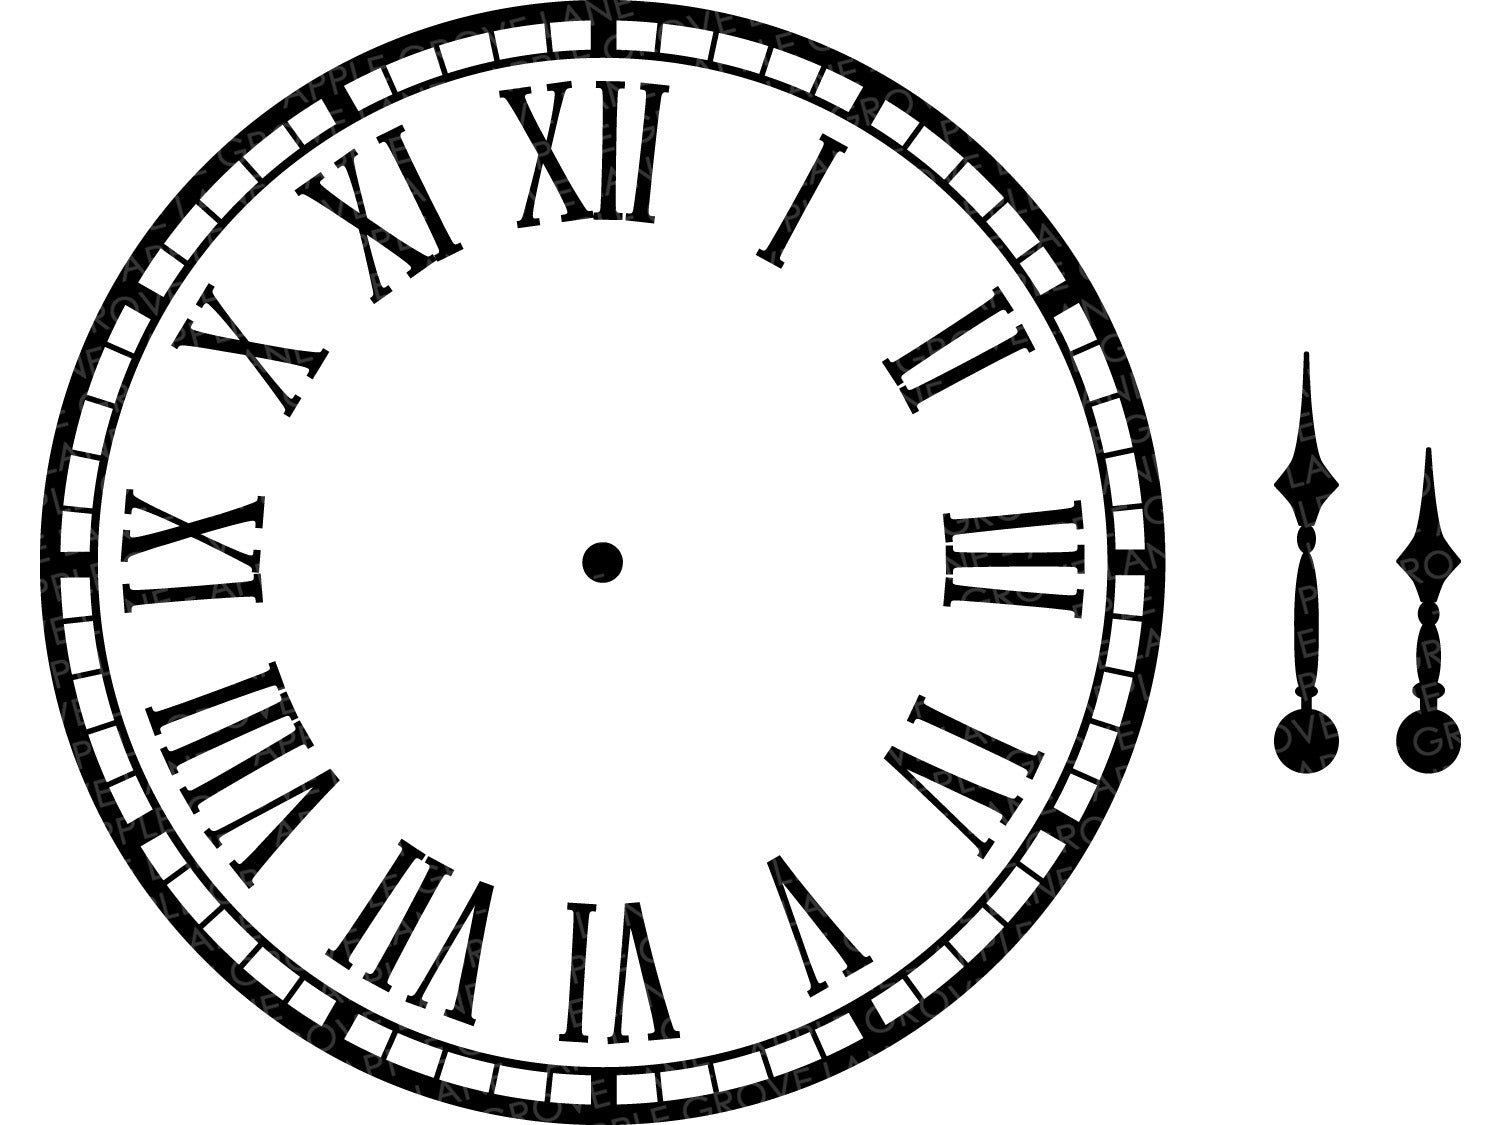 Clock Face Svg - Clock Svg - Clock Hands Svg - Clock Template - Roman Numerals Clock Svg - Roman Numerals - Clock Stencil - Svg Eps Png Dxf